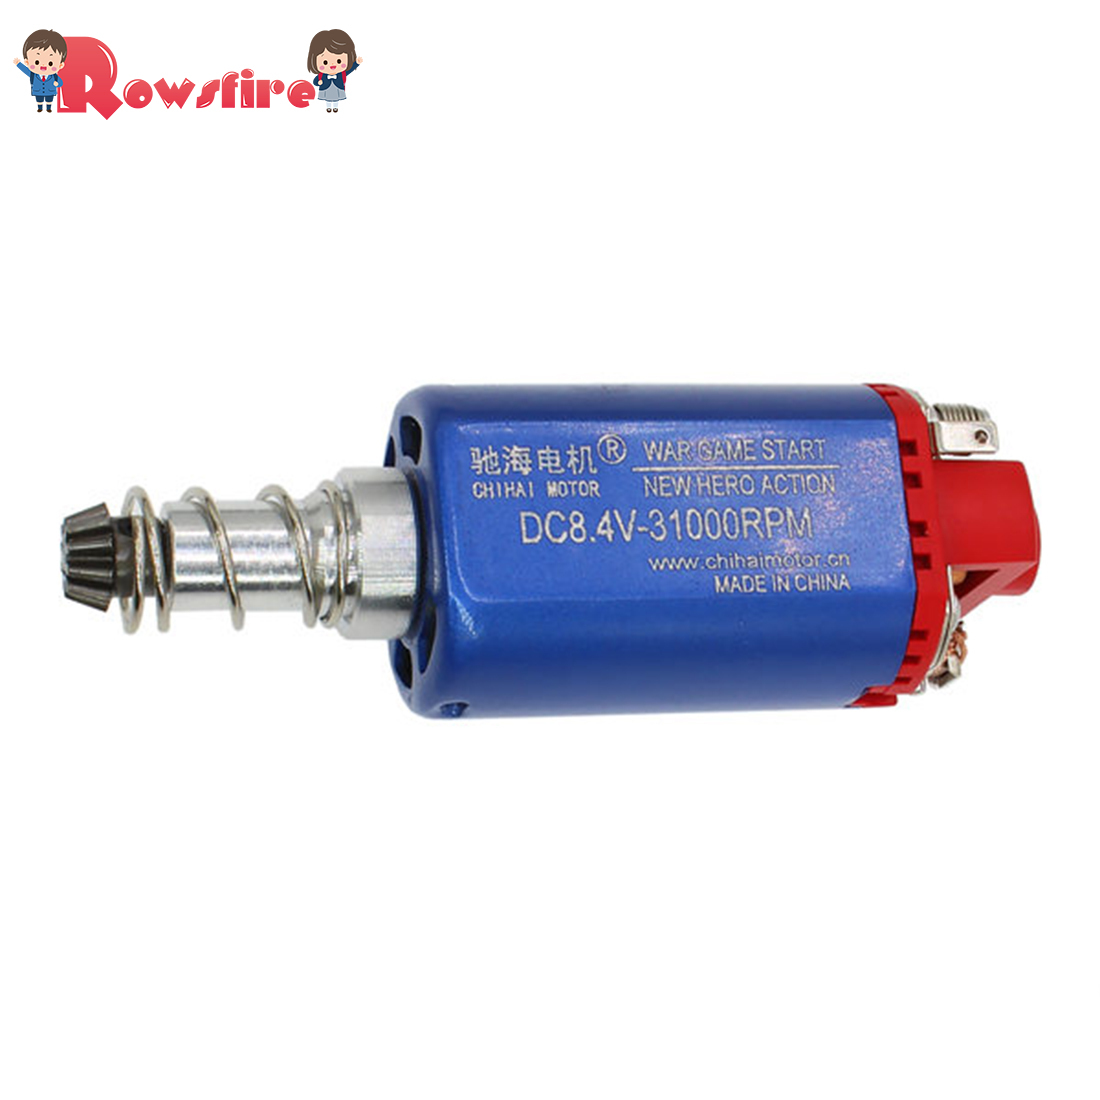 480 Long Shaft Entry Level Wet Pressure Magnetic Medium Speed Normal Torque Motor For Chihai No.2 Gearbox Modification Upgrade